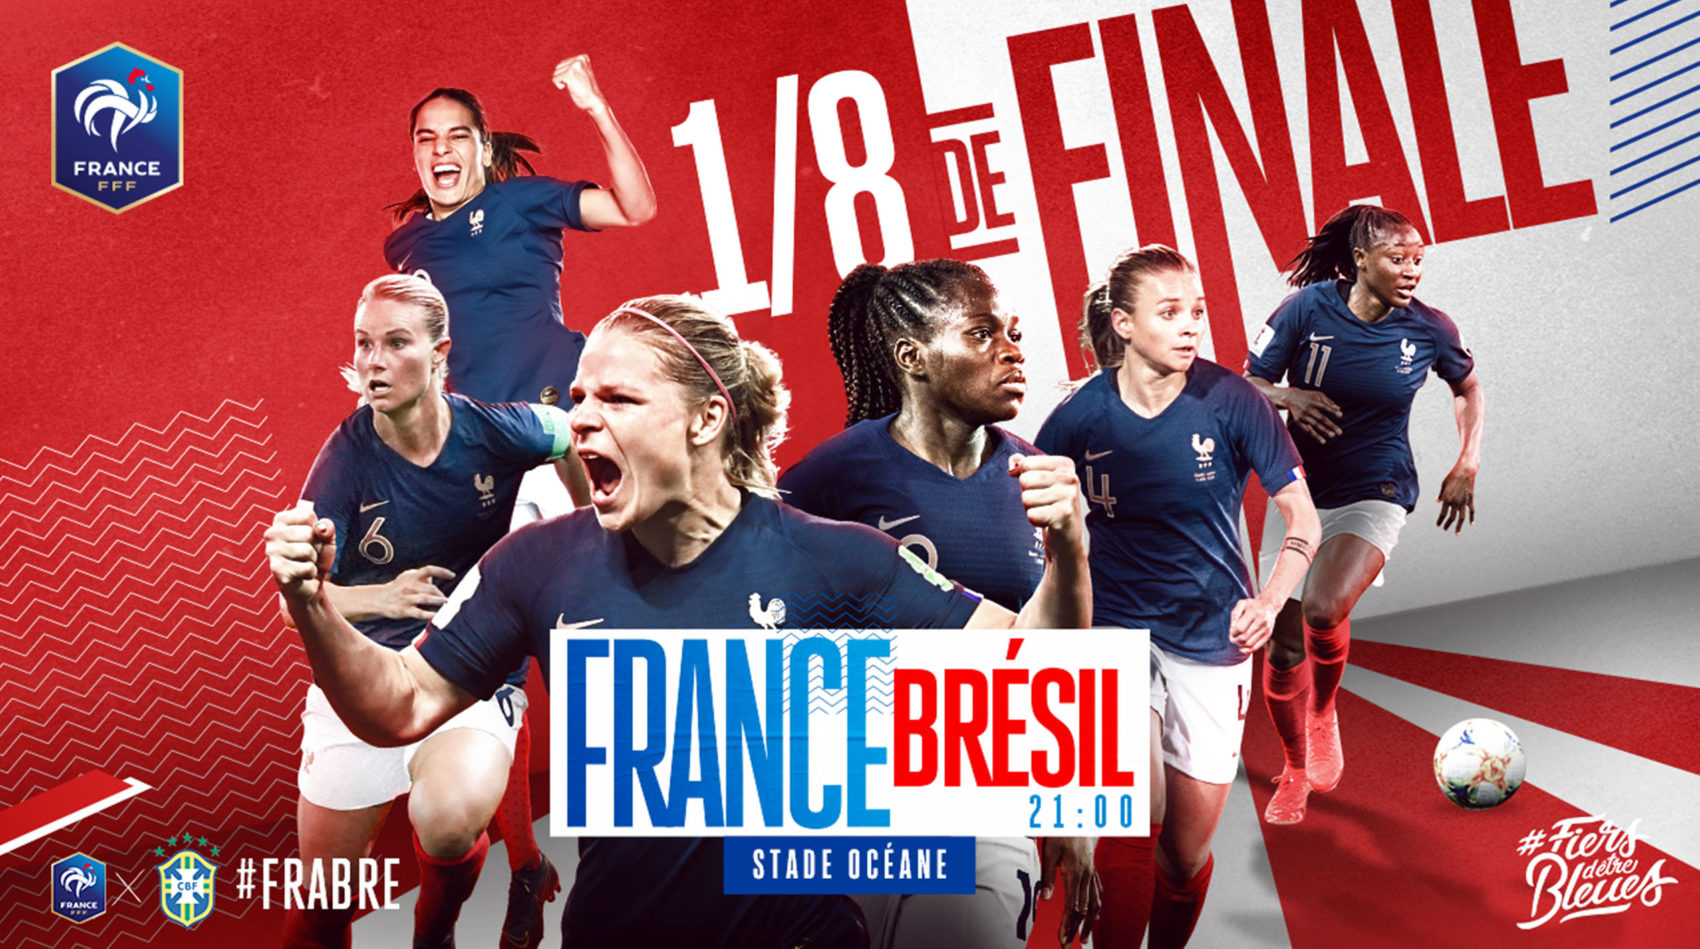 Projet_project_FFF_federation_francaise_football_french_federation_Coupe_du_Monde_Feminine_FIFA_France_2019_TM_world_cup_women_KV_match_8e